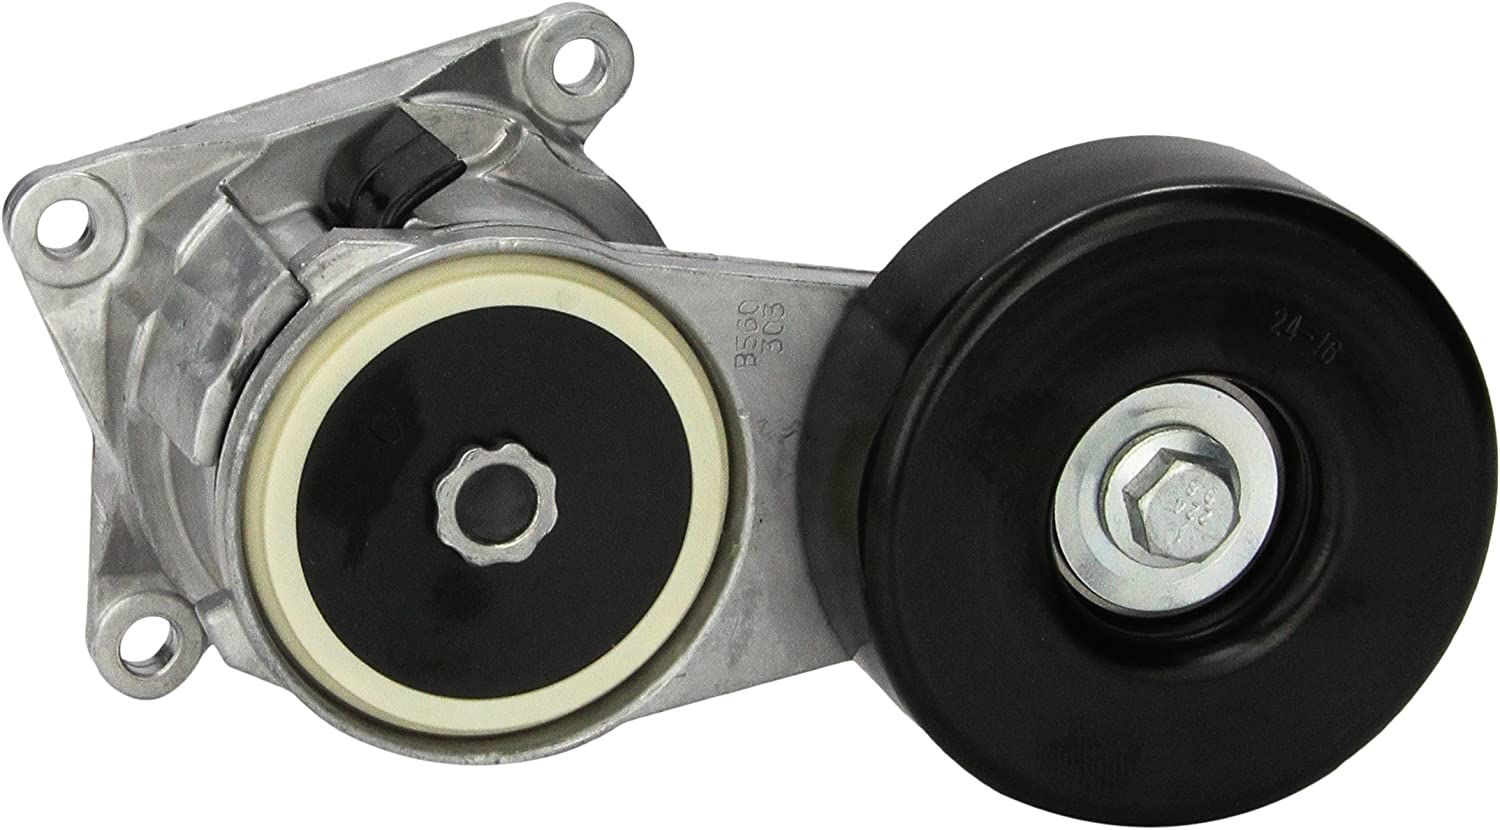 Dayco 89303 Automatic Assembly Tensioner 70% OFF Outlet Max 85% OFF